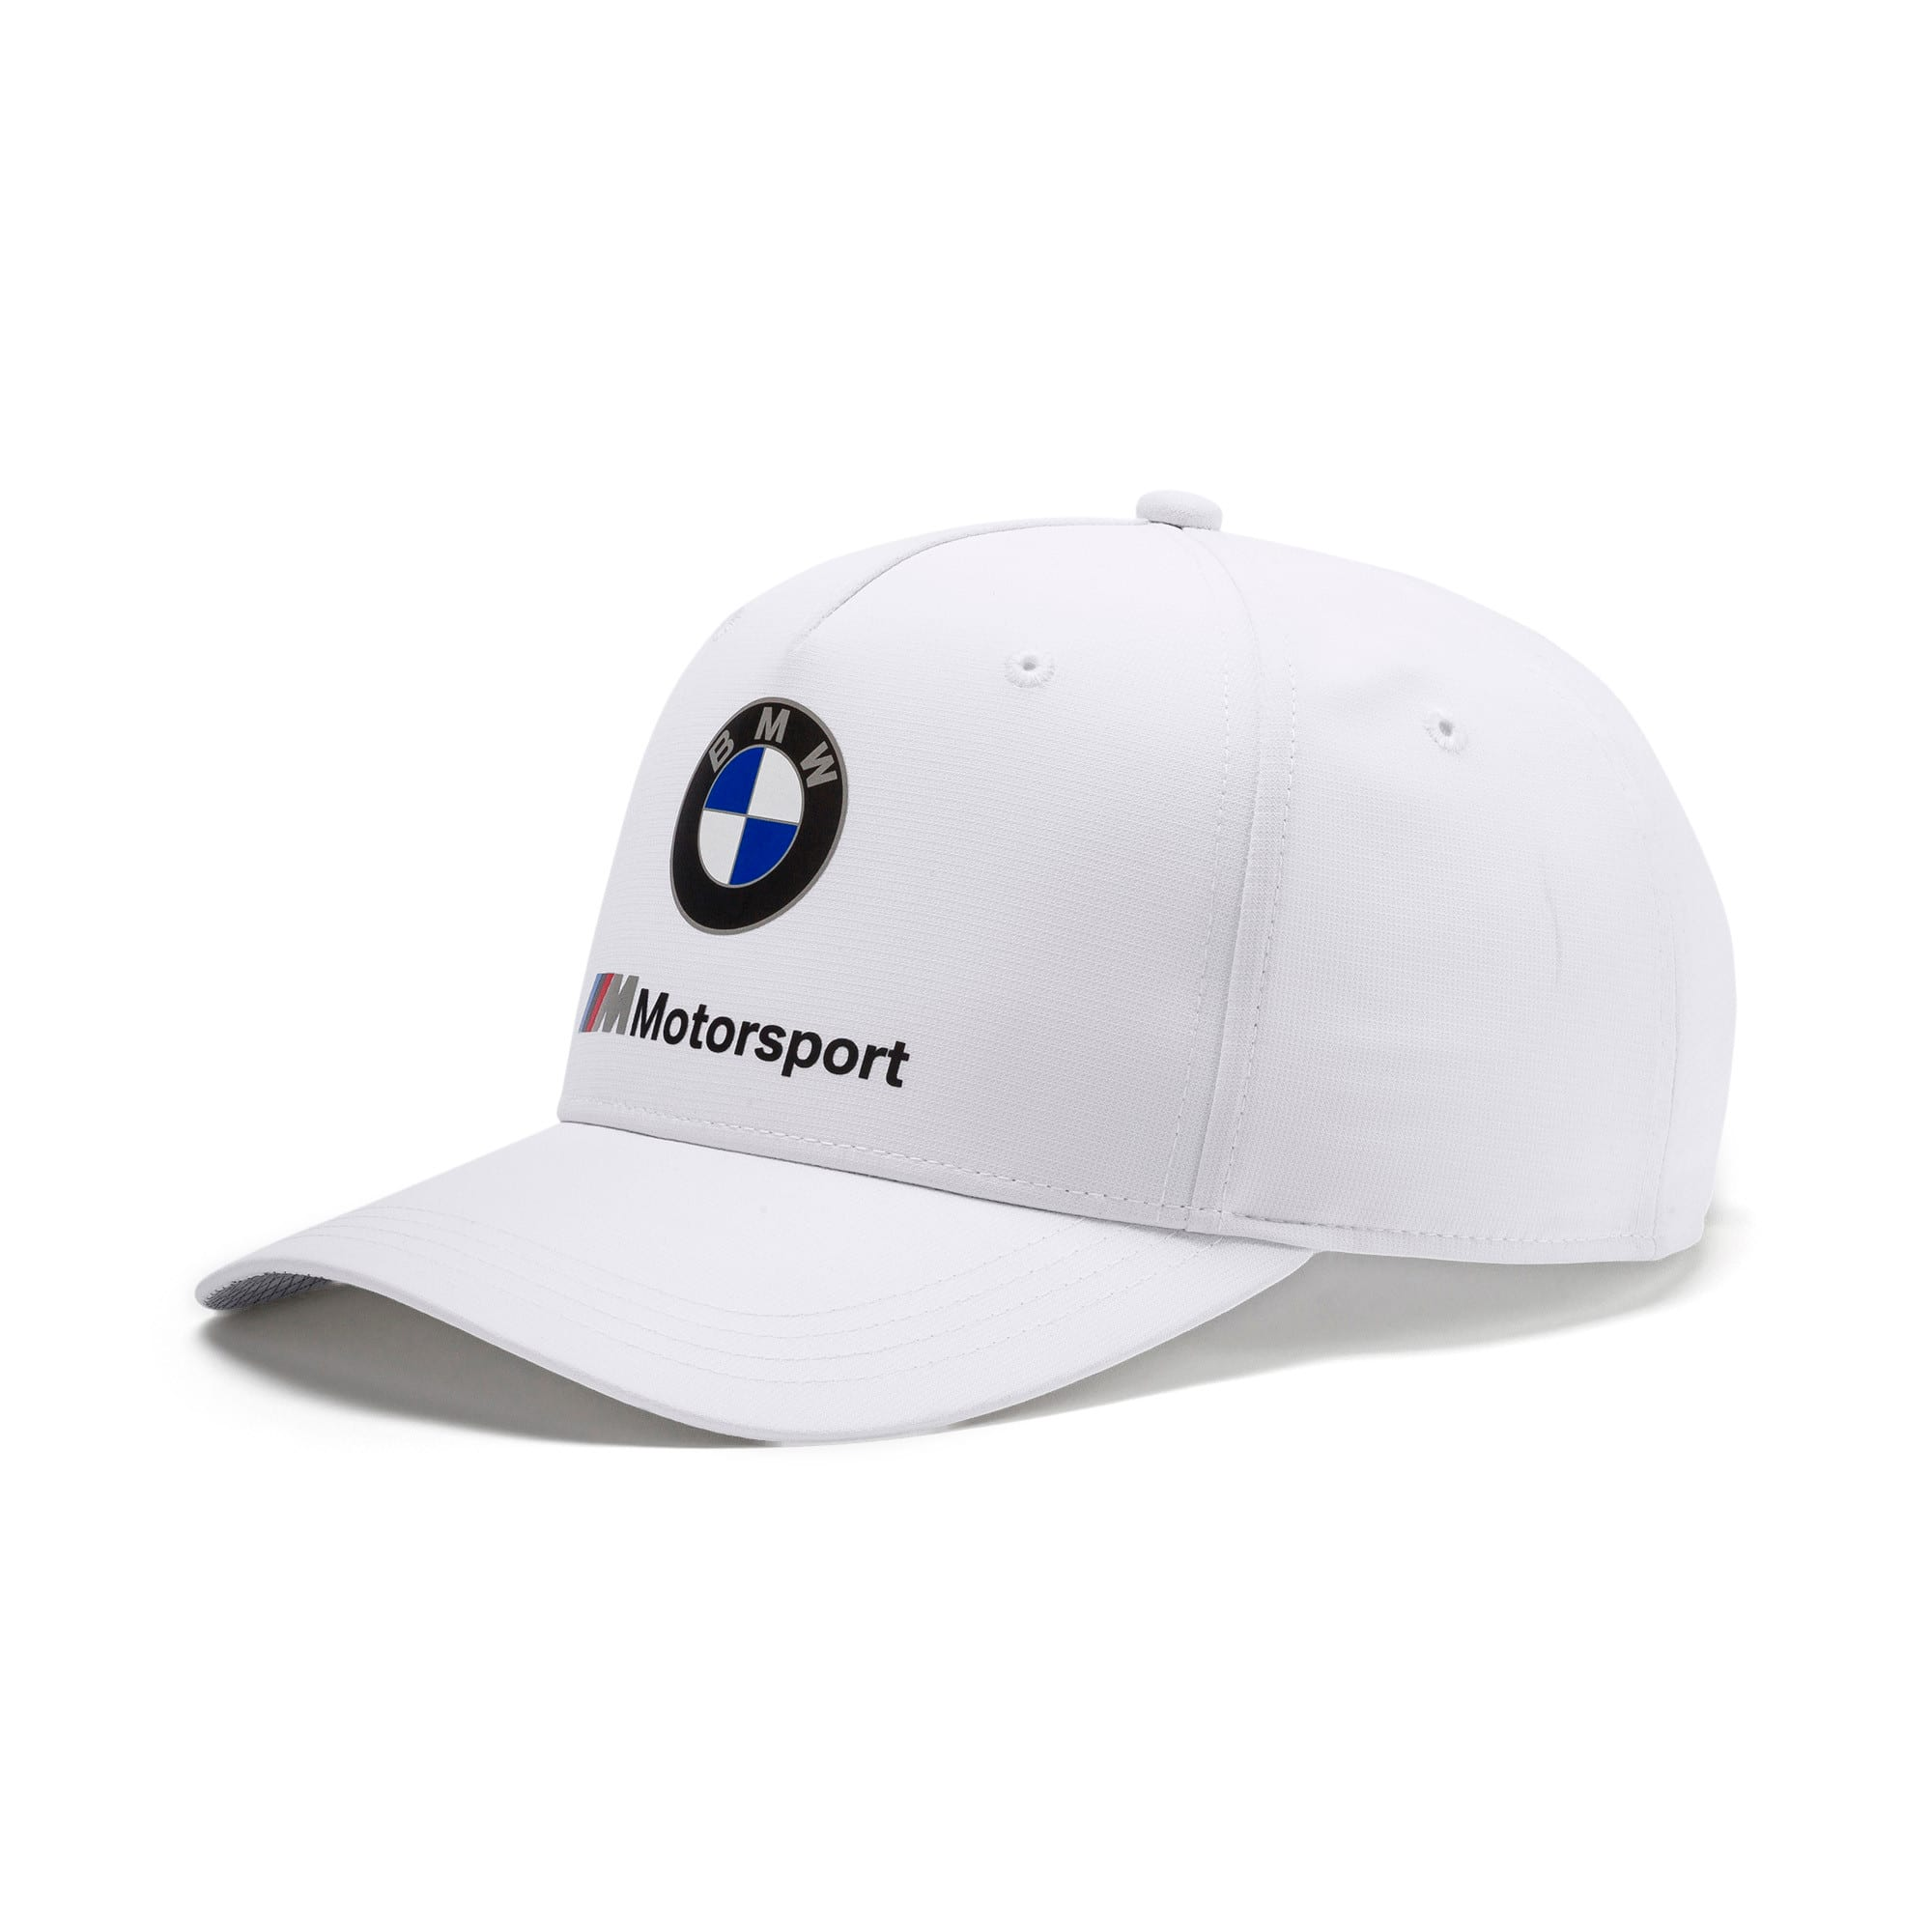 Thumbnail 1 of BMW M Motorsport Cap, Puma White, medium